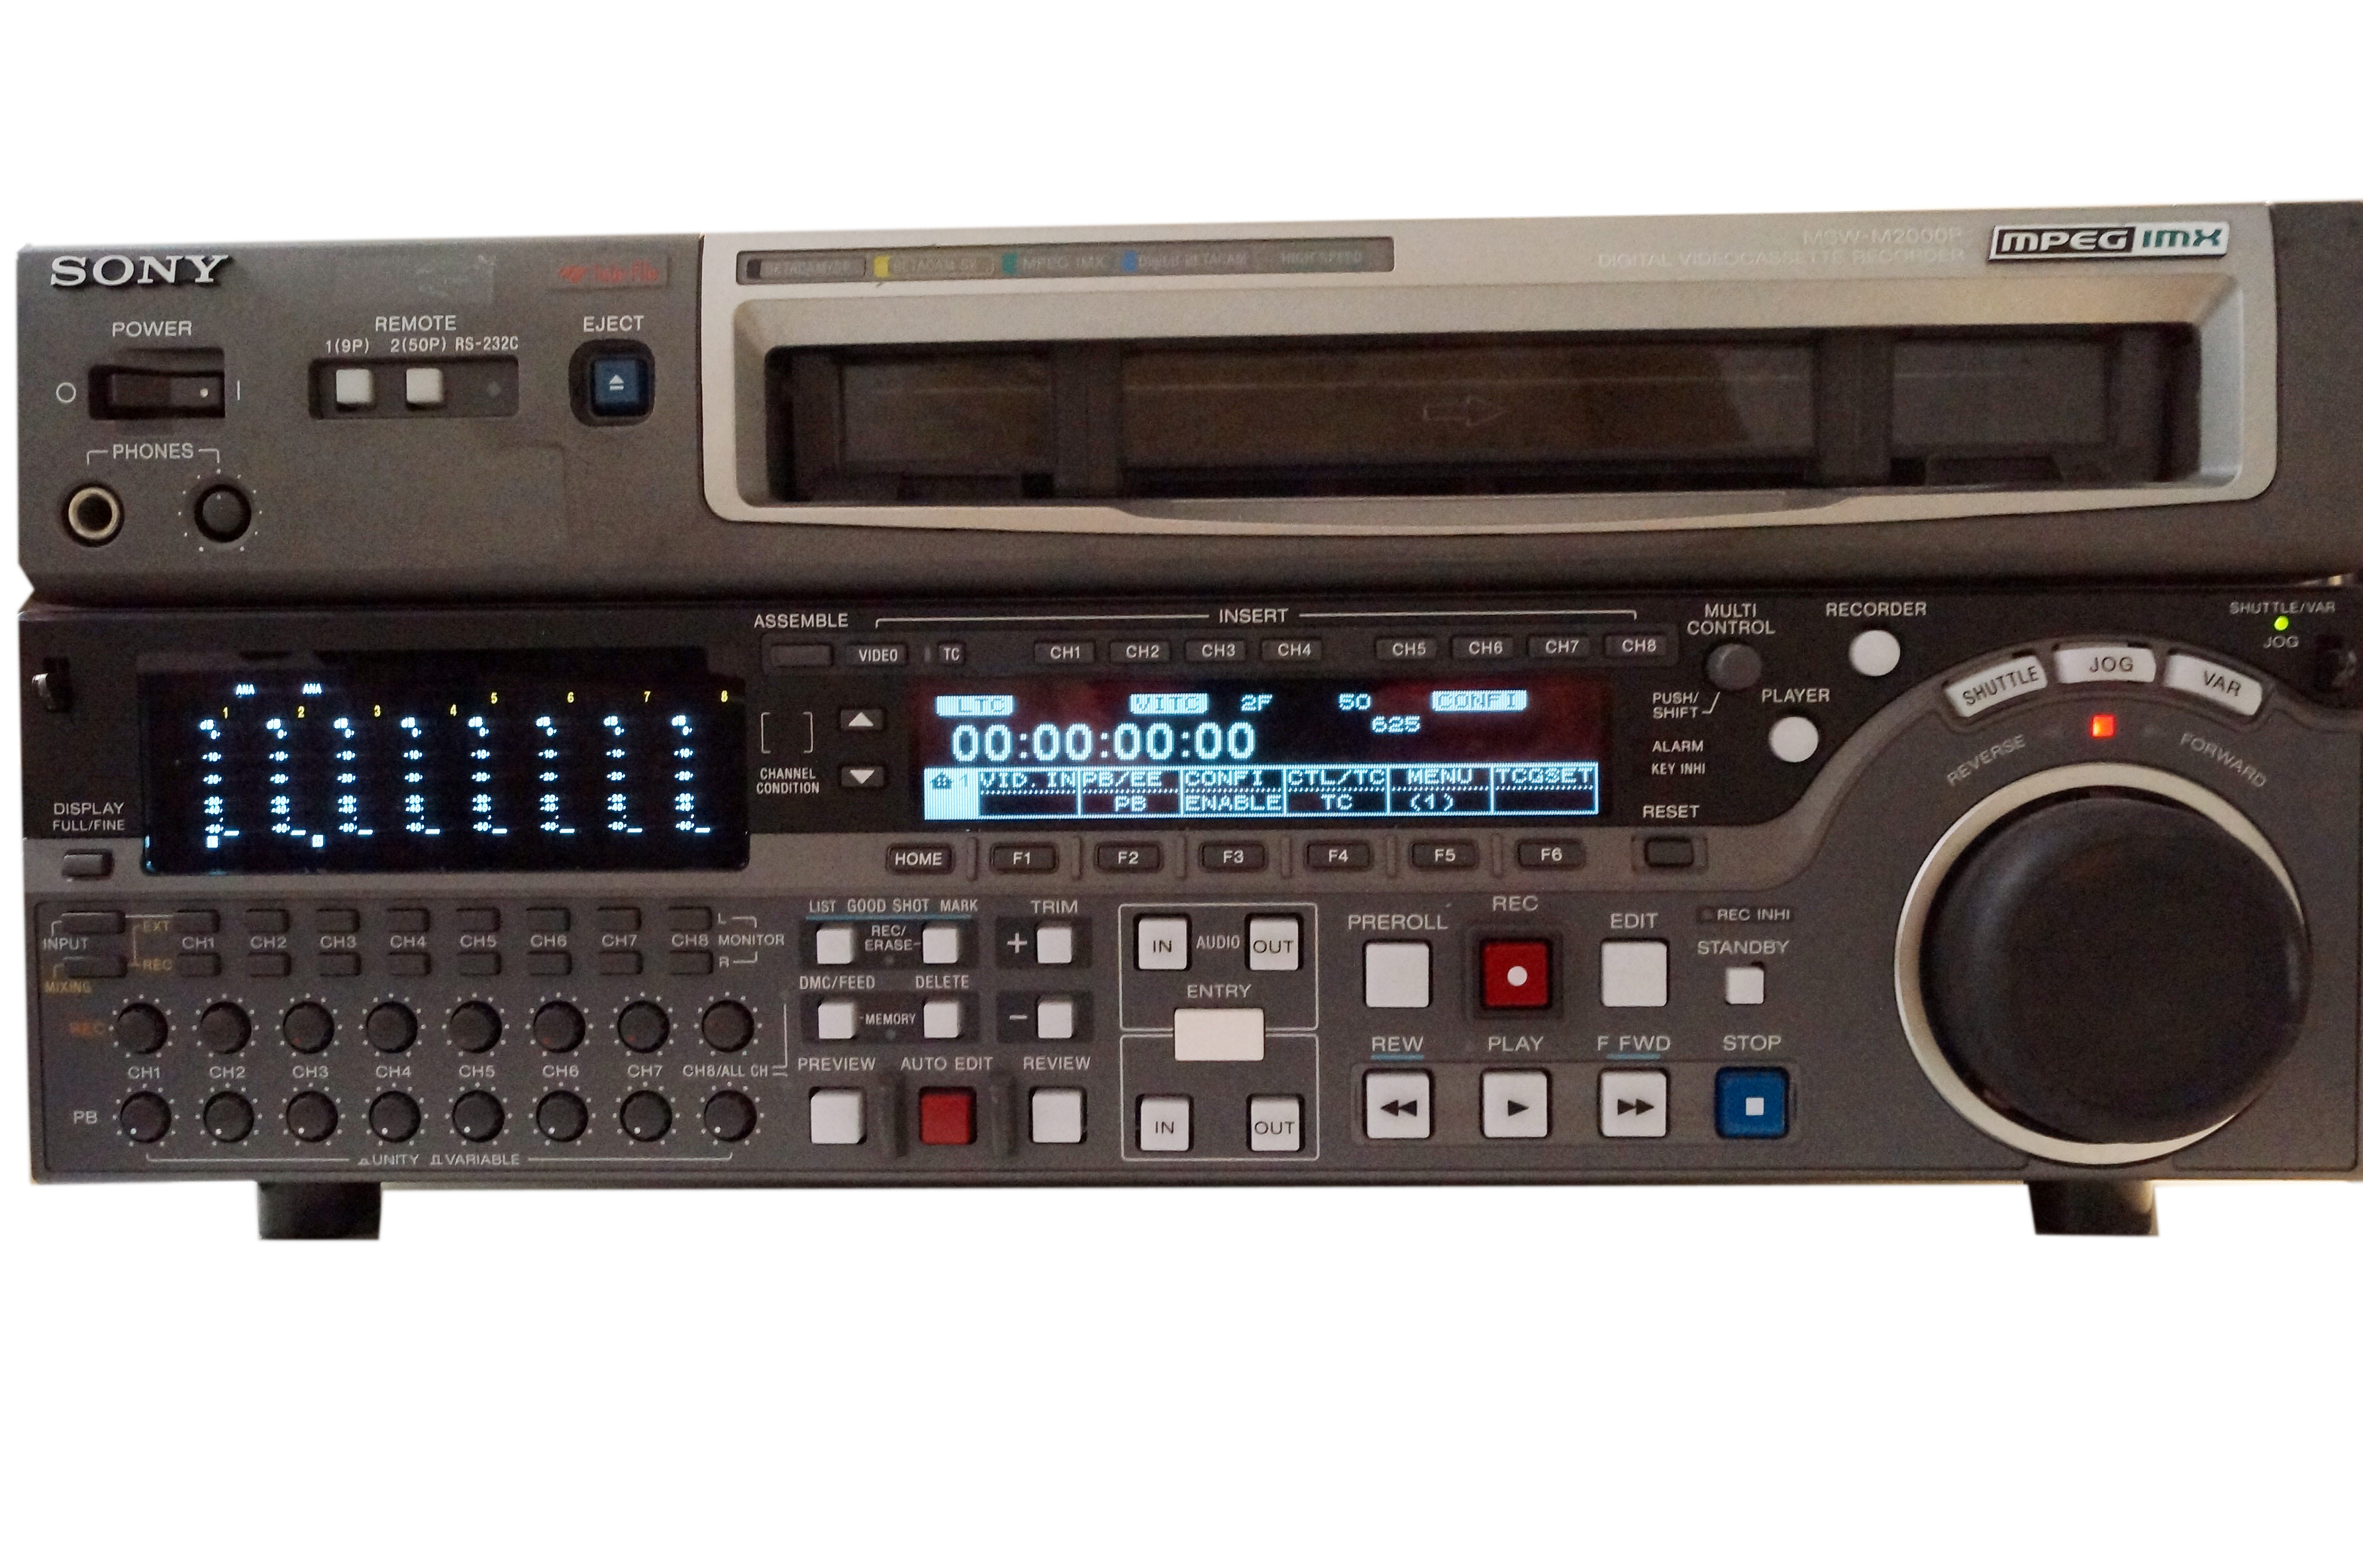 SONY MSW-M2000P - Image #1